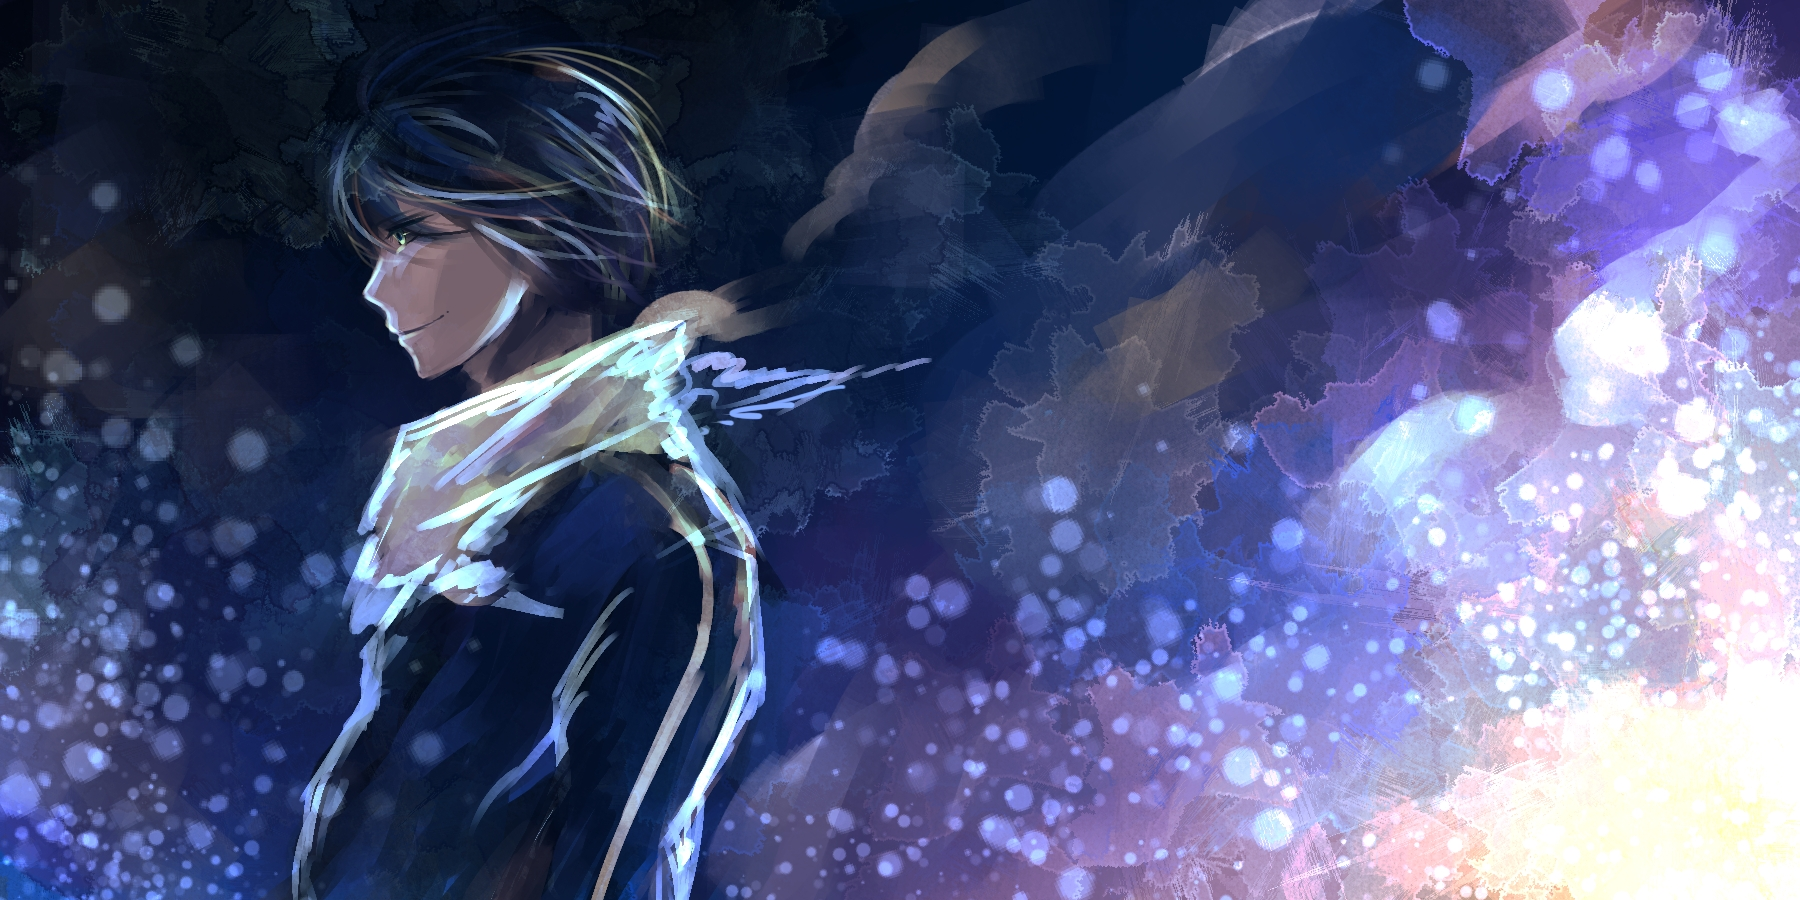 imagen noragami wallpaper by - photo #17